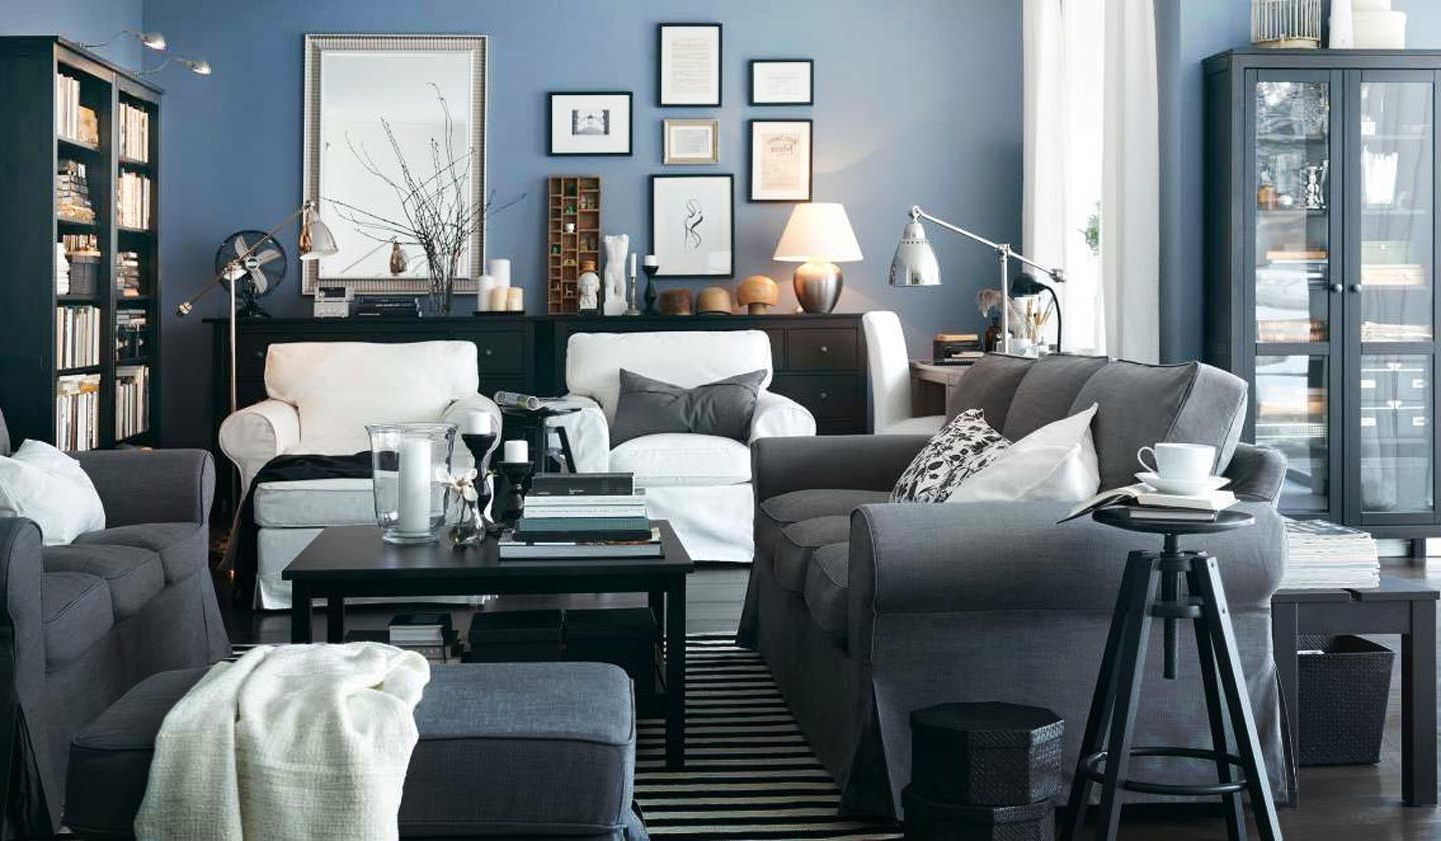 High Quality Room · Blue And Gray ... Part 7